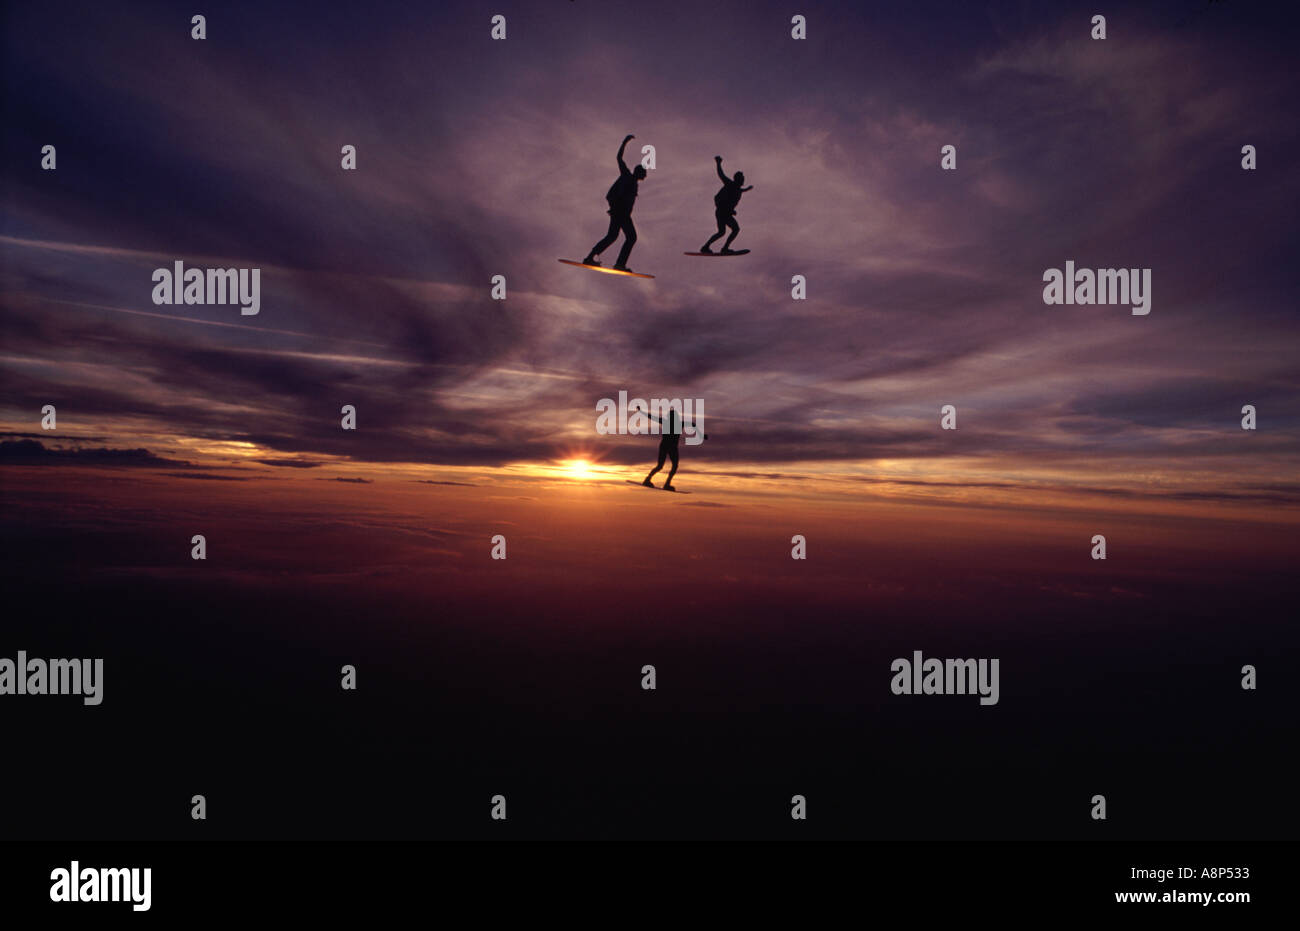 Skysurfers at sunset - Stock Image